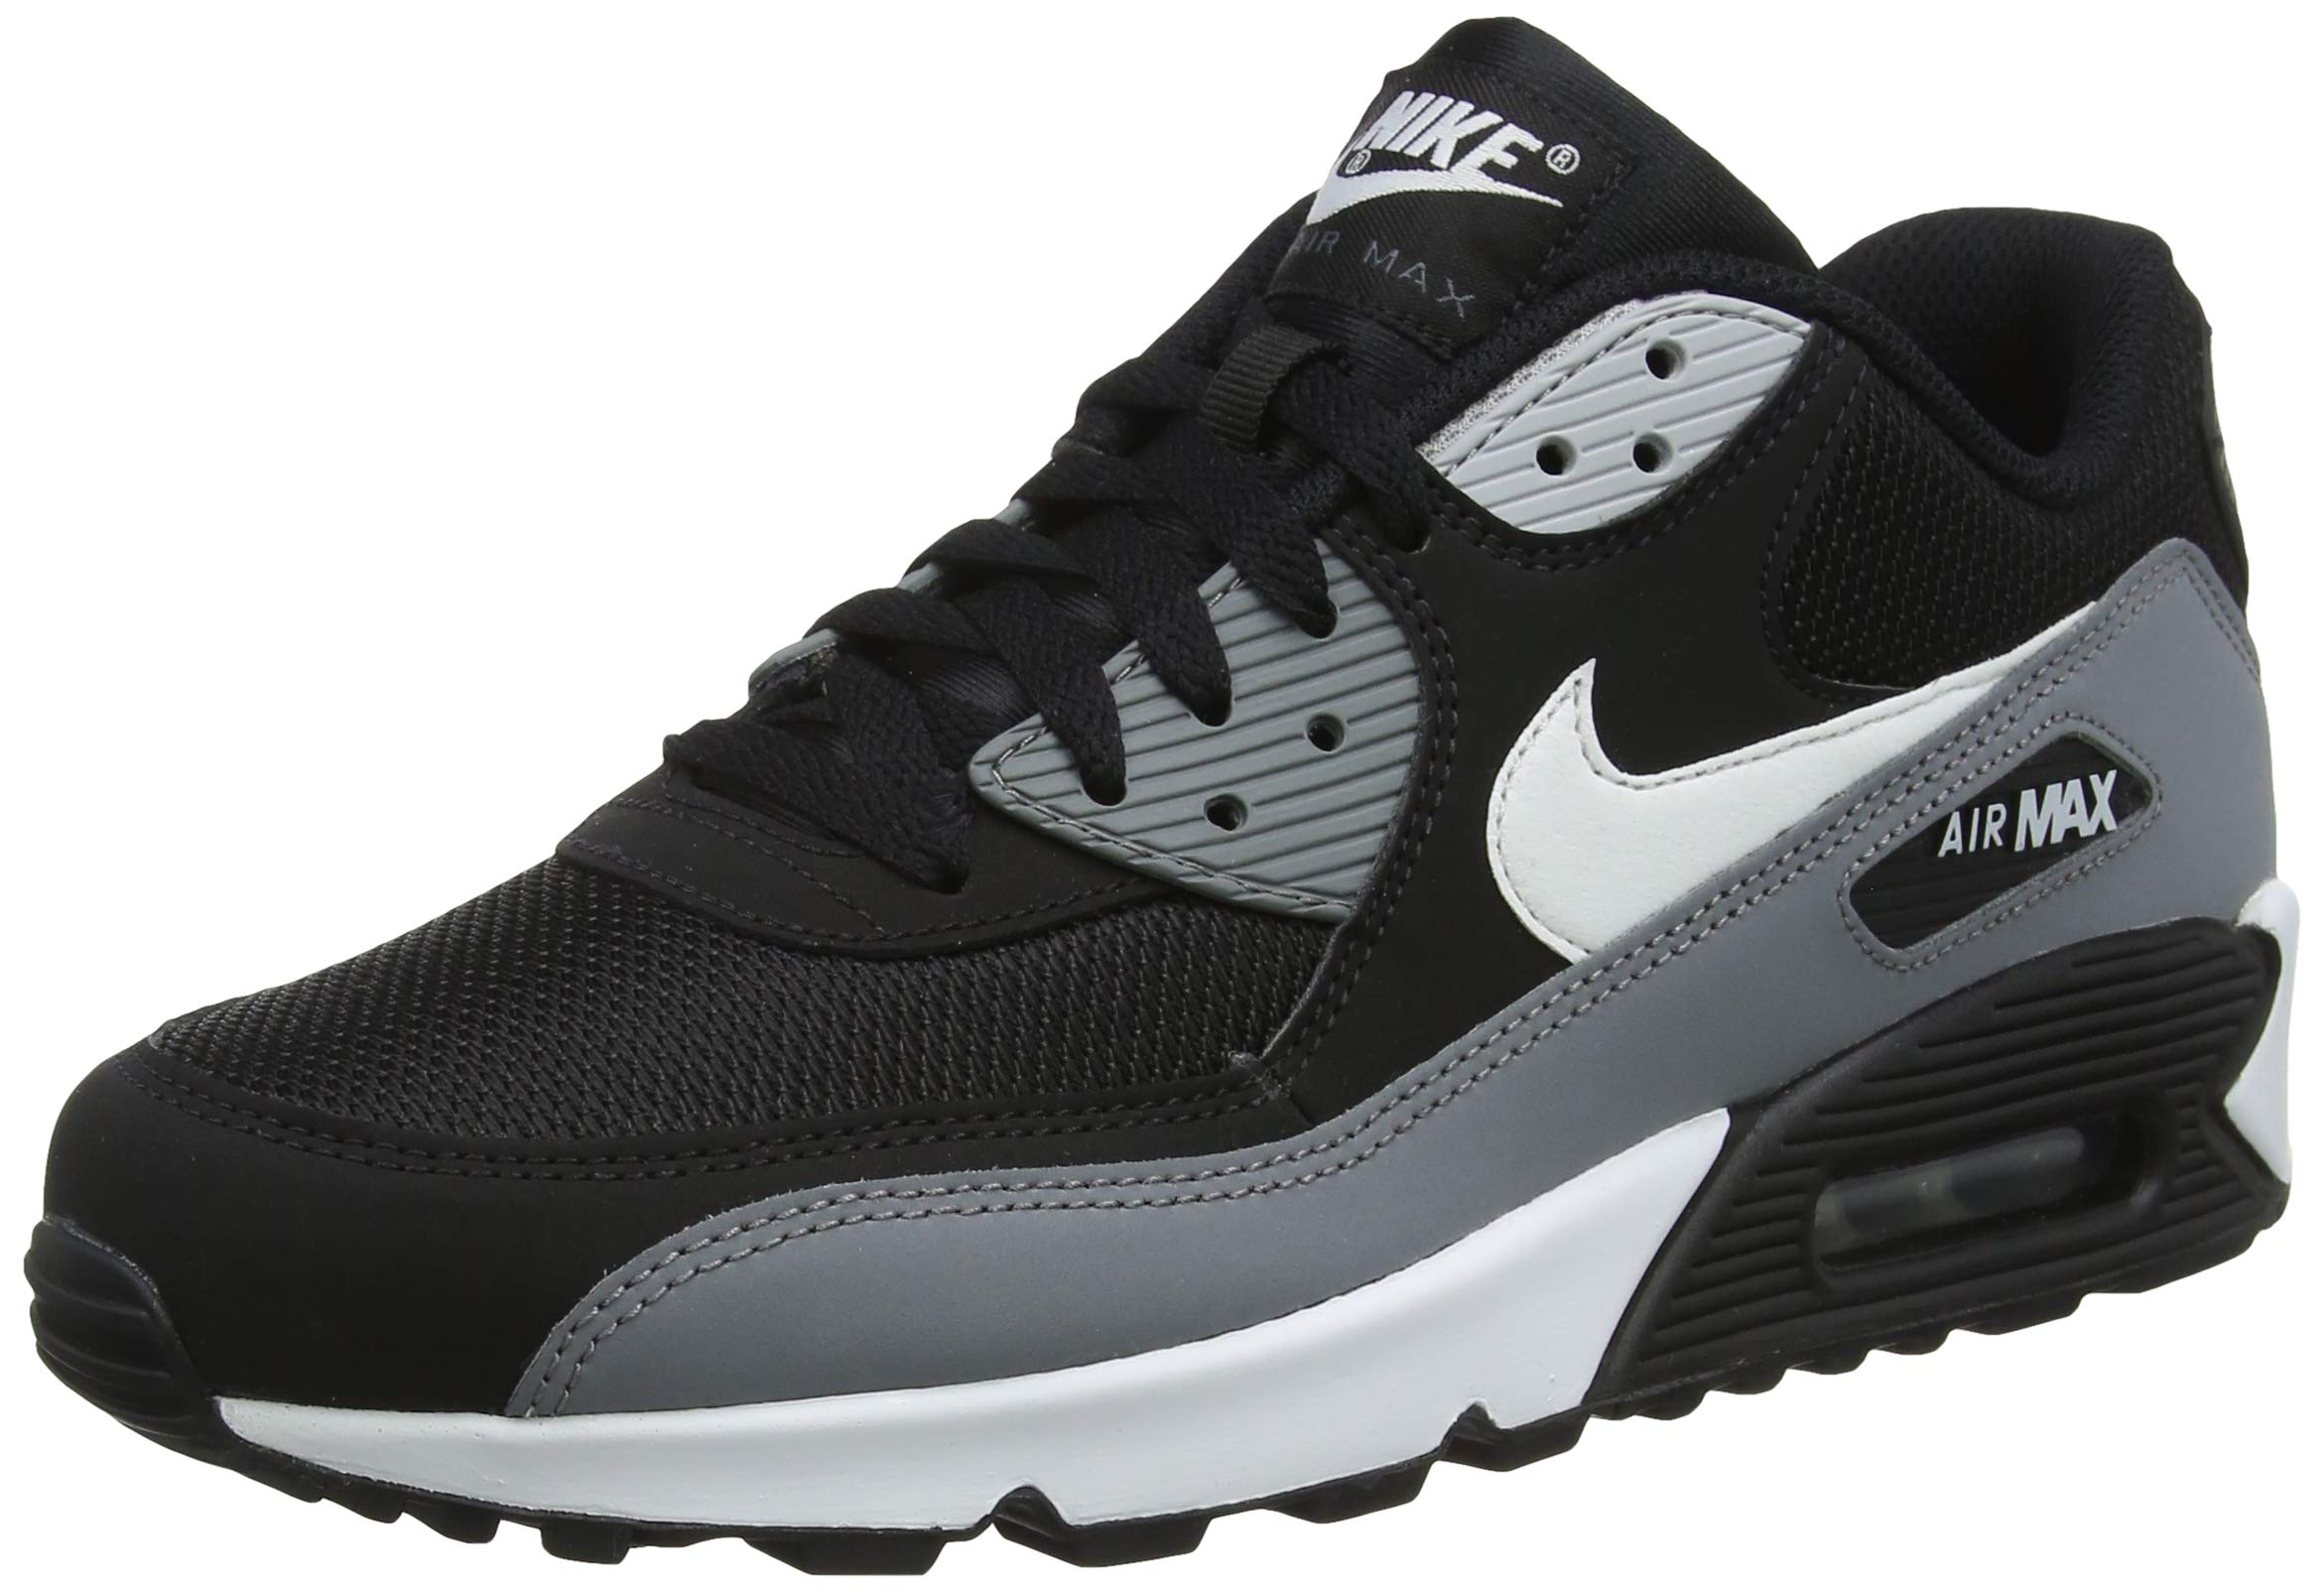 c4487668a5 Galleon - Nike Mens Air Max 90 Essential Running Shoes Black/White/Cool  Grey/Anthracite AJ1285-018 Size 11.5